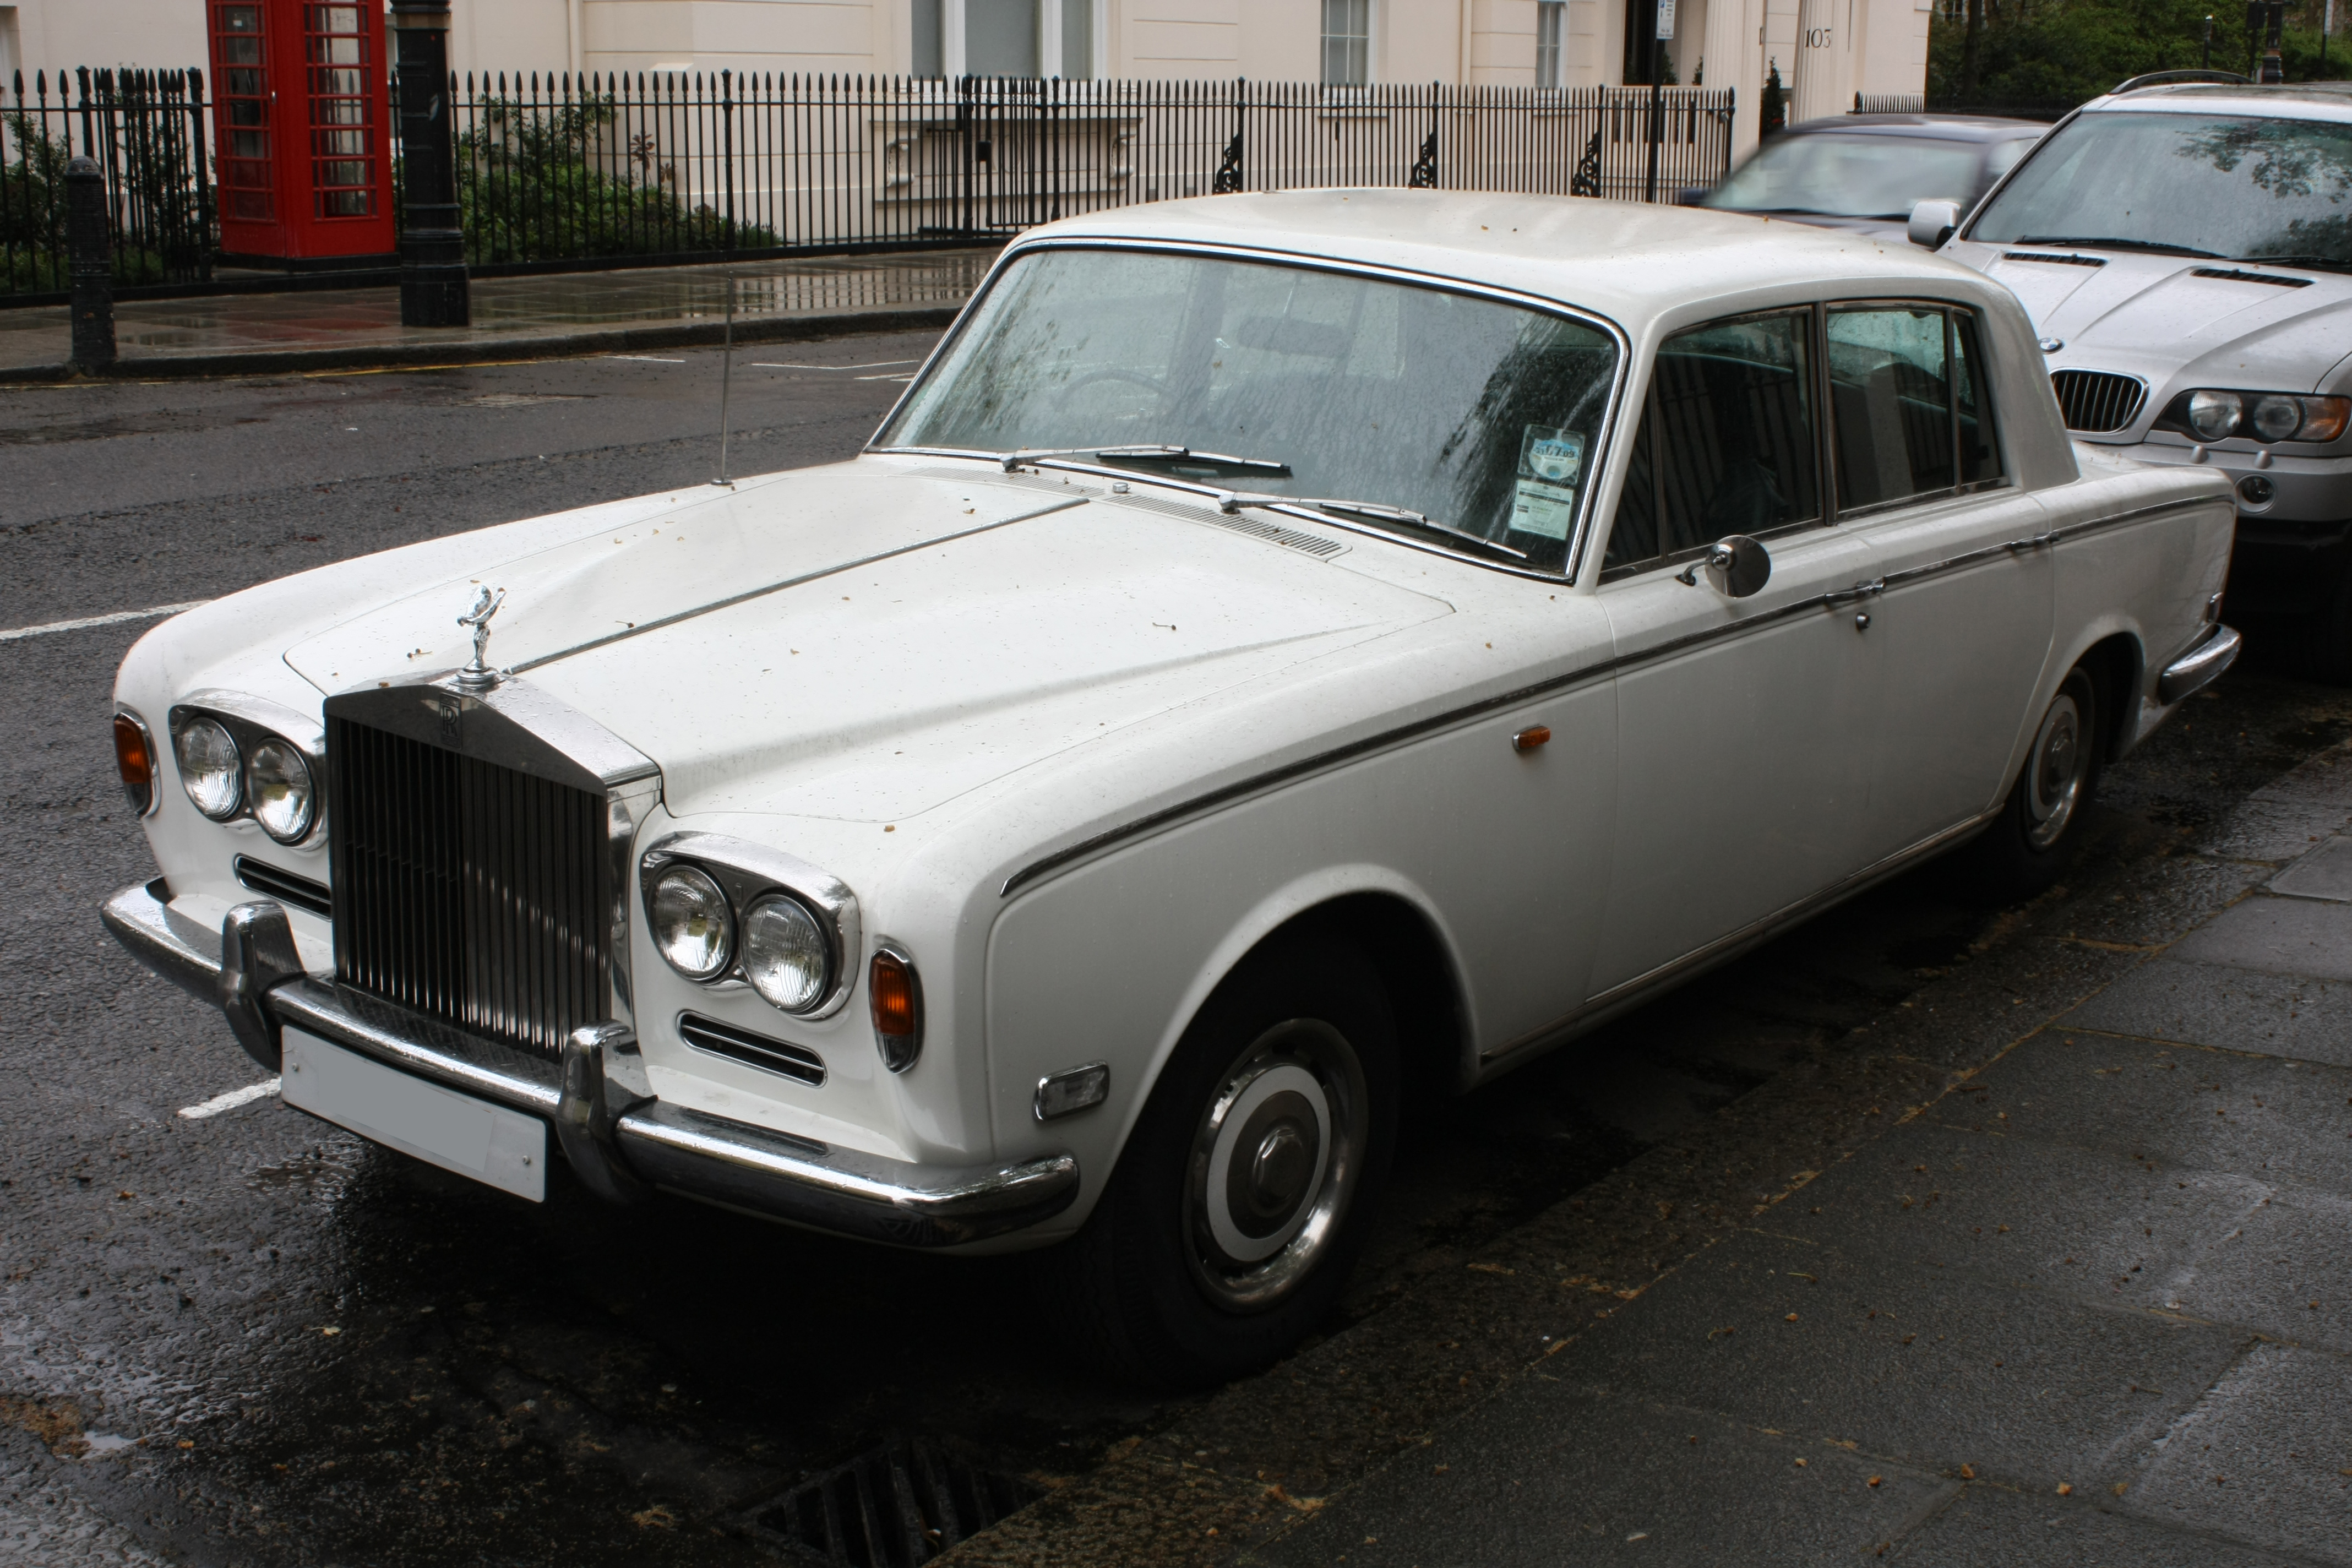 The Jensen Owners' Club • View topic - Rolls Royce Silver Shadow